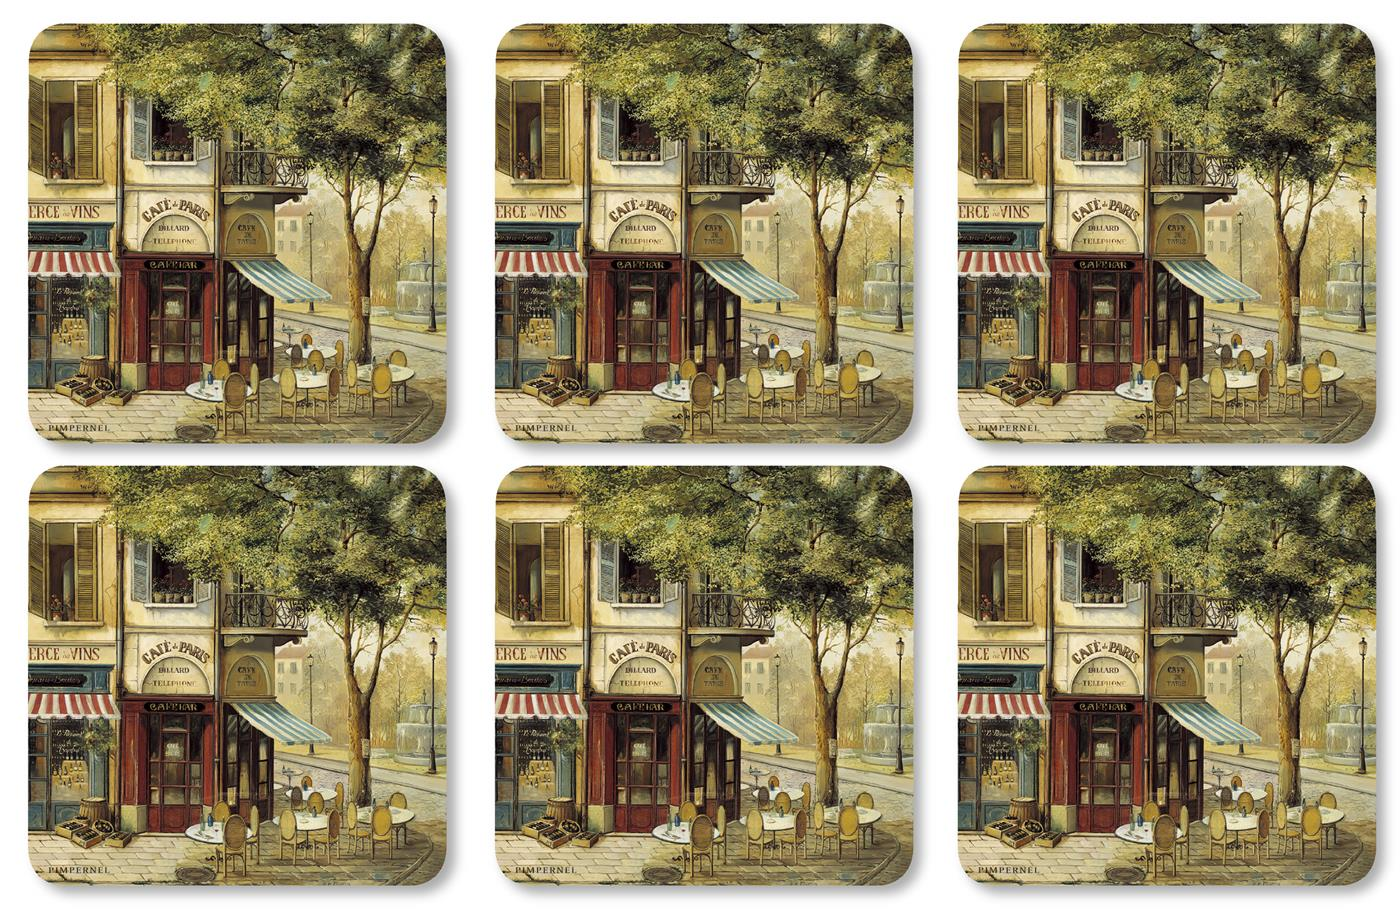 Pimpernel Parisian Scenes Coasters Set of 6 image number 0